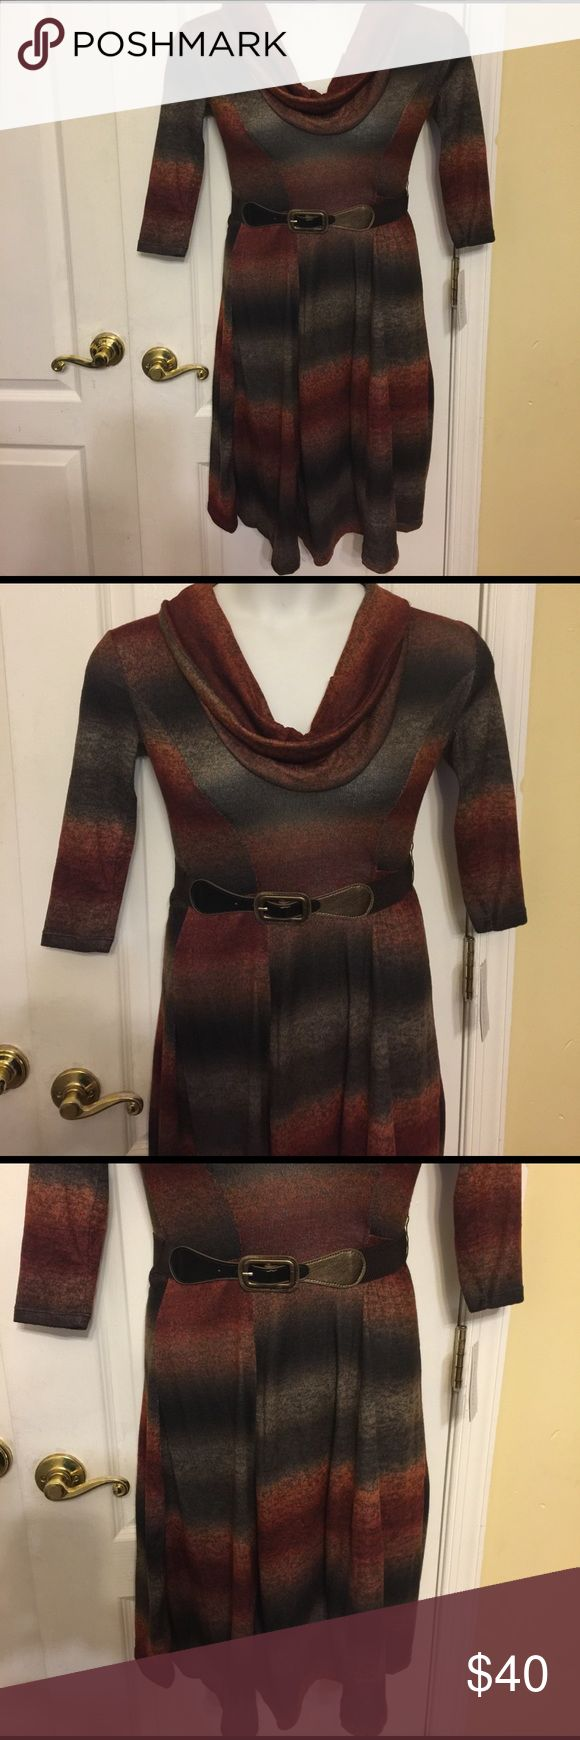 Robbie Bee short sleeve sweater dress petite pxs Sleeve length: short sleeve, neckline: cowl neck, dress length: mid length, fabric content: 95% polyester, 5% spandex. Color rust brown Multicolor Robbie Bee Dresses Midi